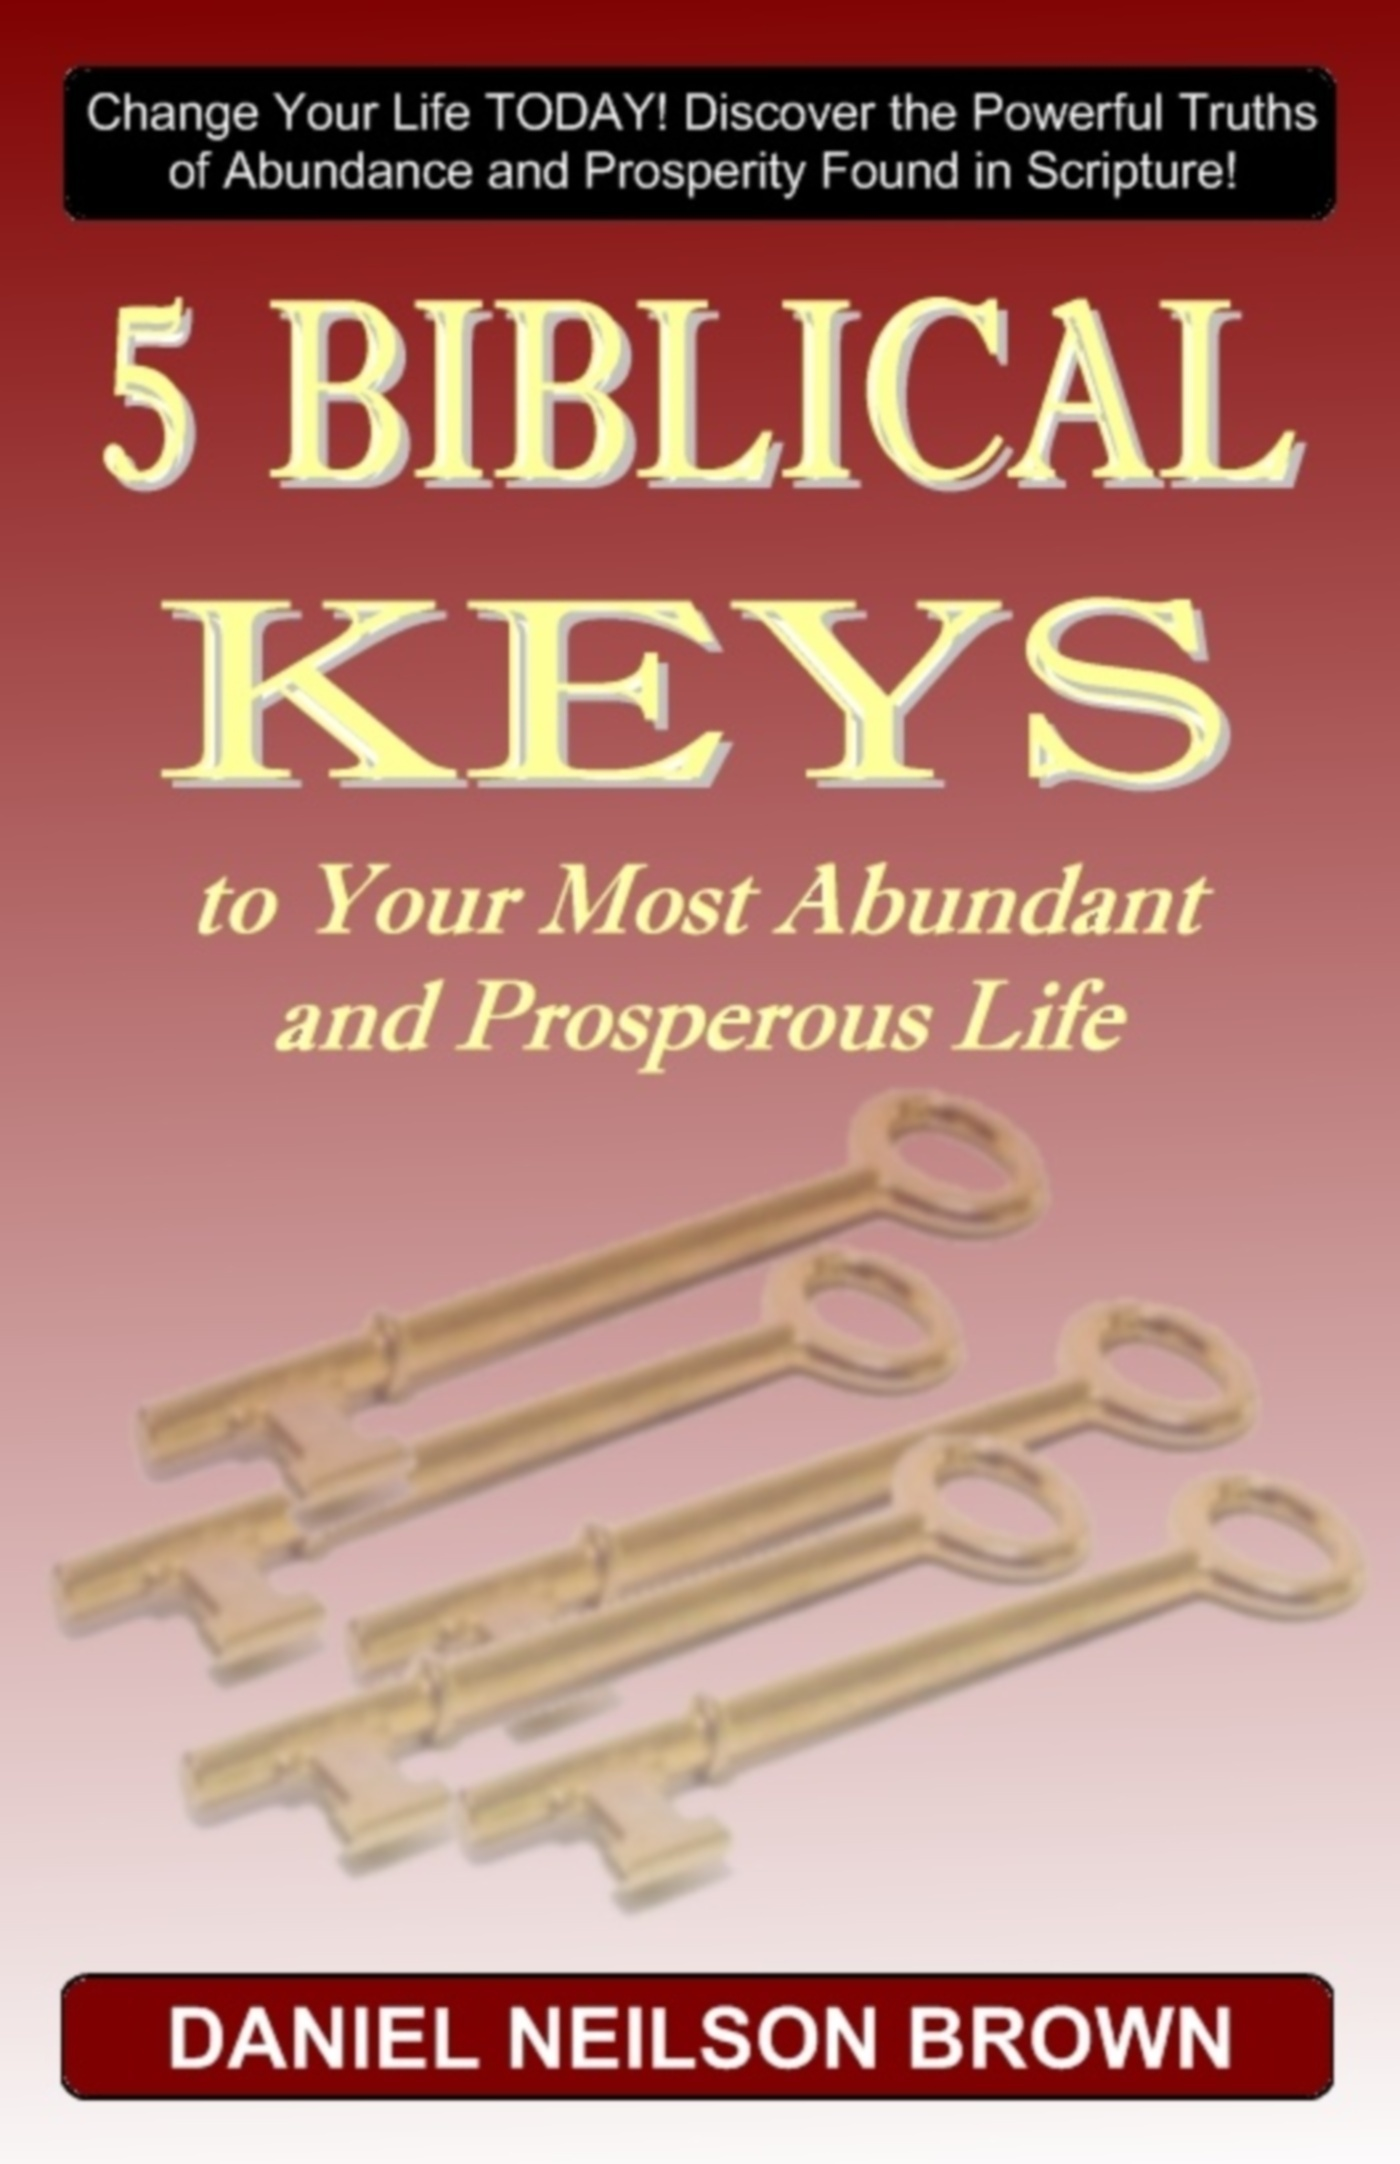 5 Biblical Keys to Your Most Abundant and Prosperous Life: Christian Prosperity & Self Help Principles